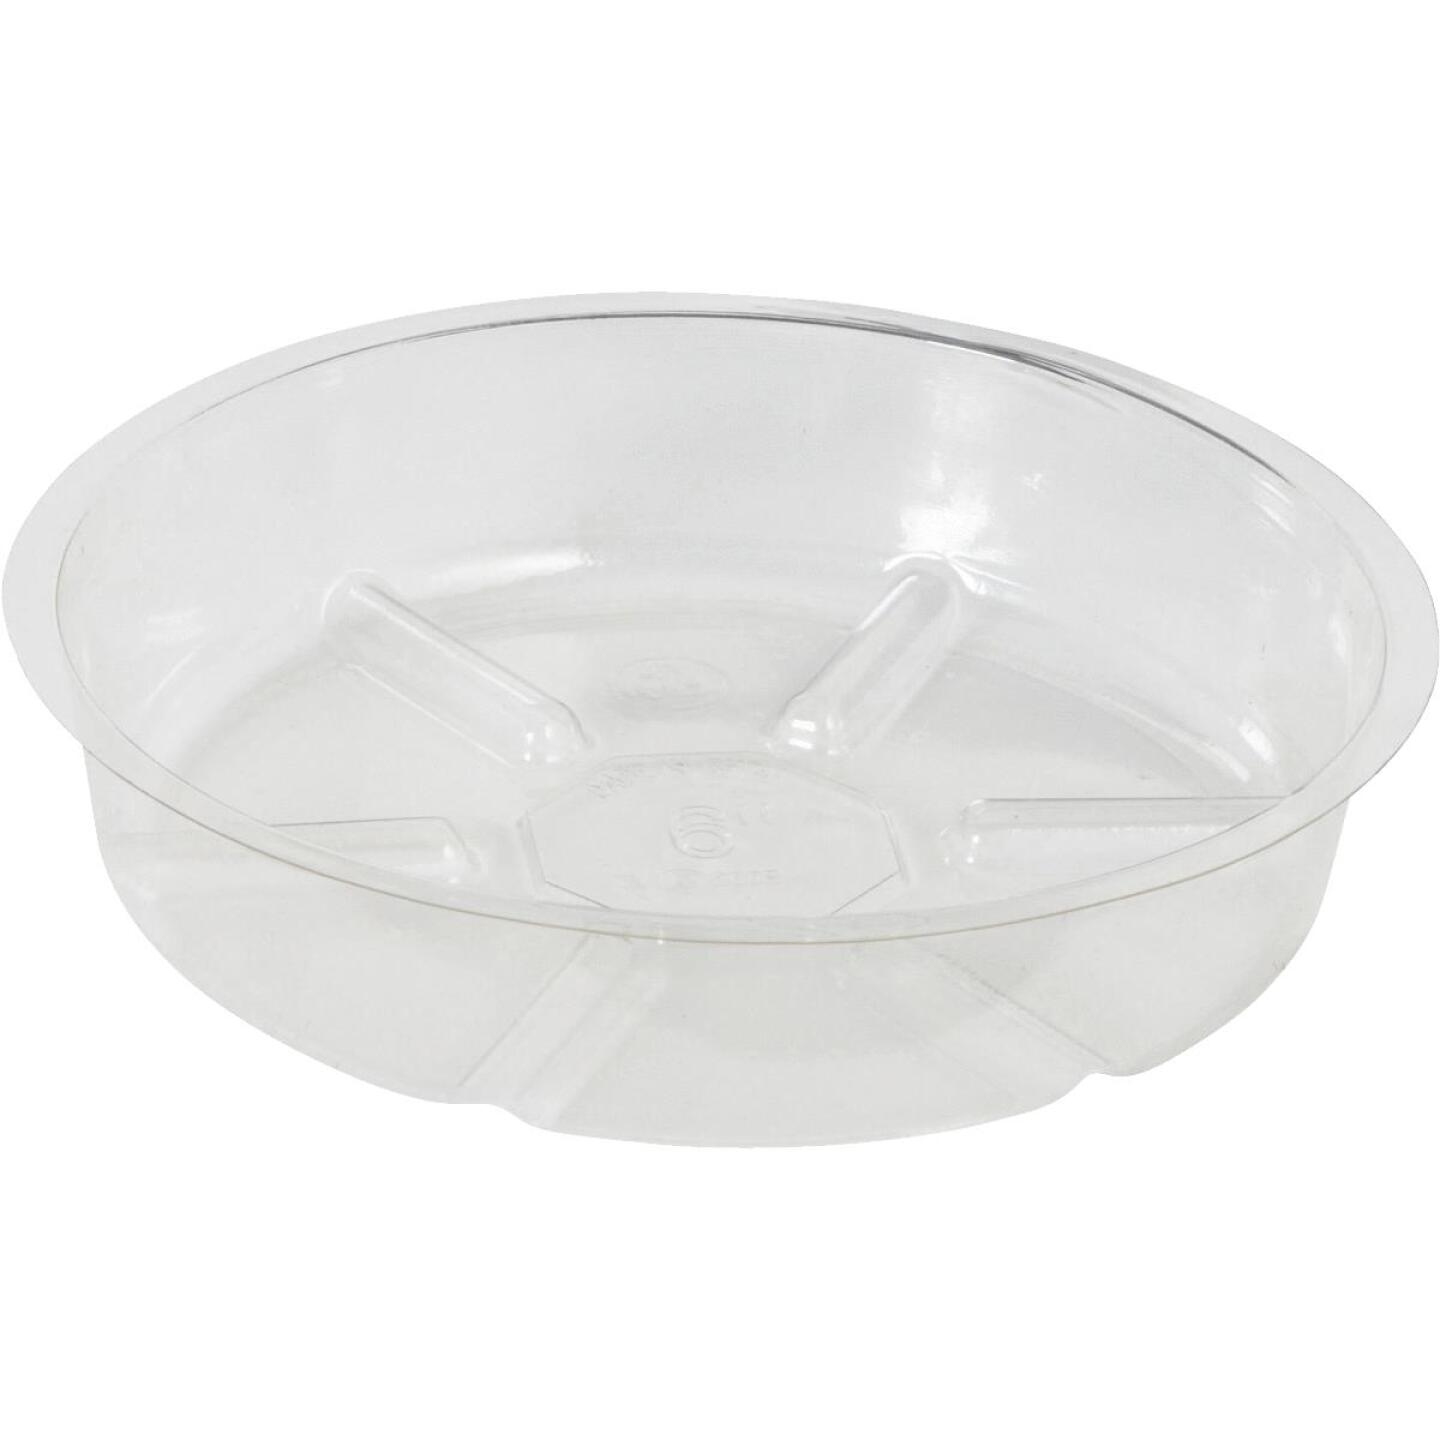 Best Garden 6 In. Clear Vinyl Flower Pot Saucer Image 1